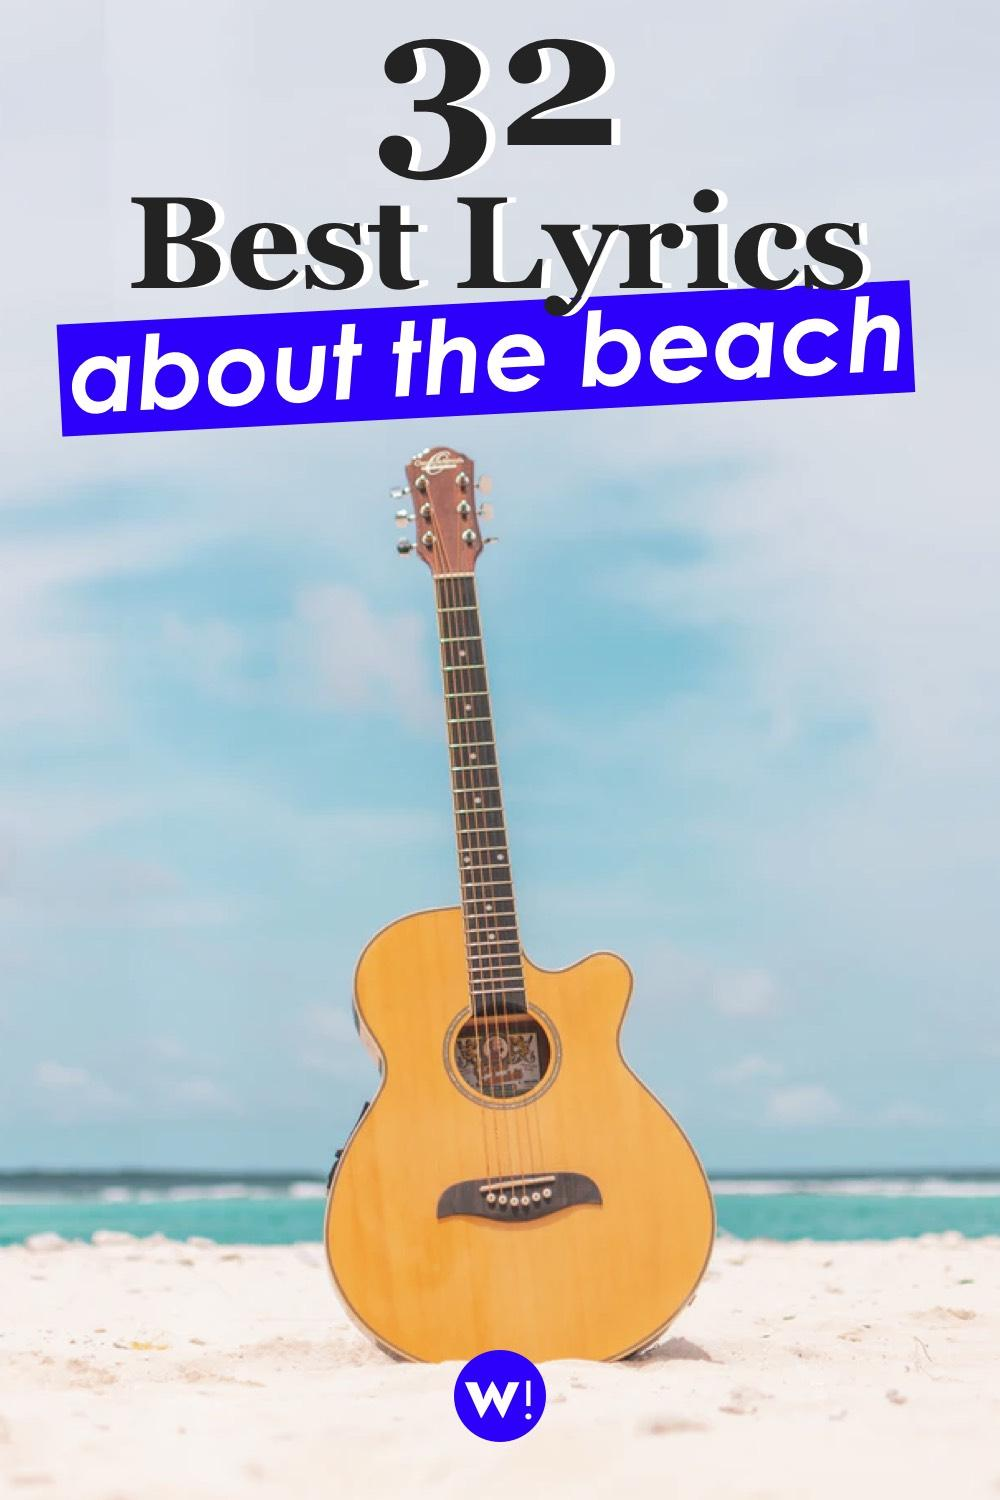 If you're looking for song lyrics about the beach, you're in the right place! I've put together for you 32 song lyrics, all related to the beach. beach lyrics captions | beach lyrics songs | best beach quotes |sea lyrics |beach quotes and sayings lyrics